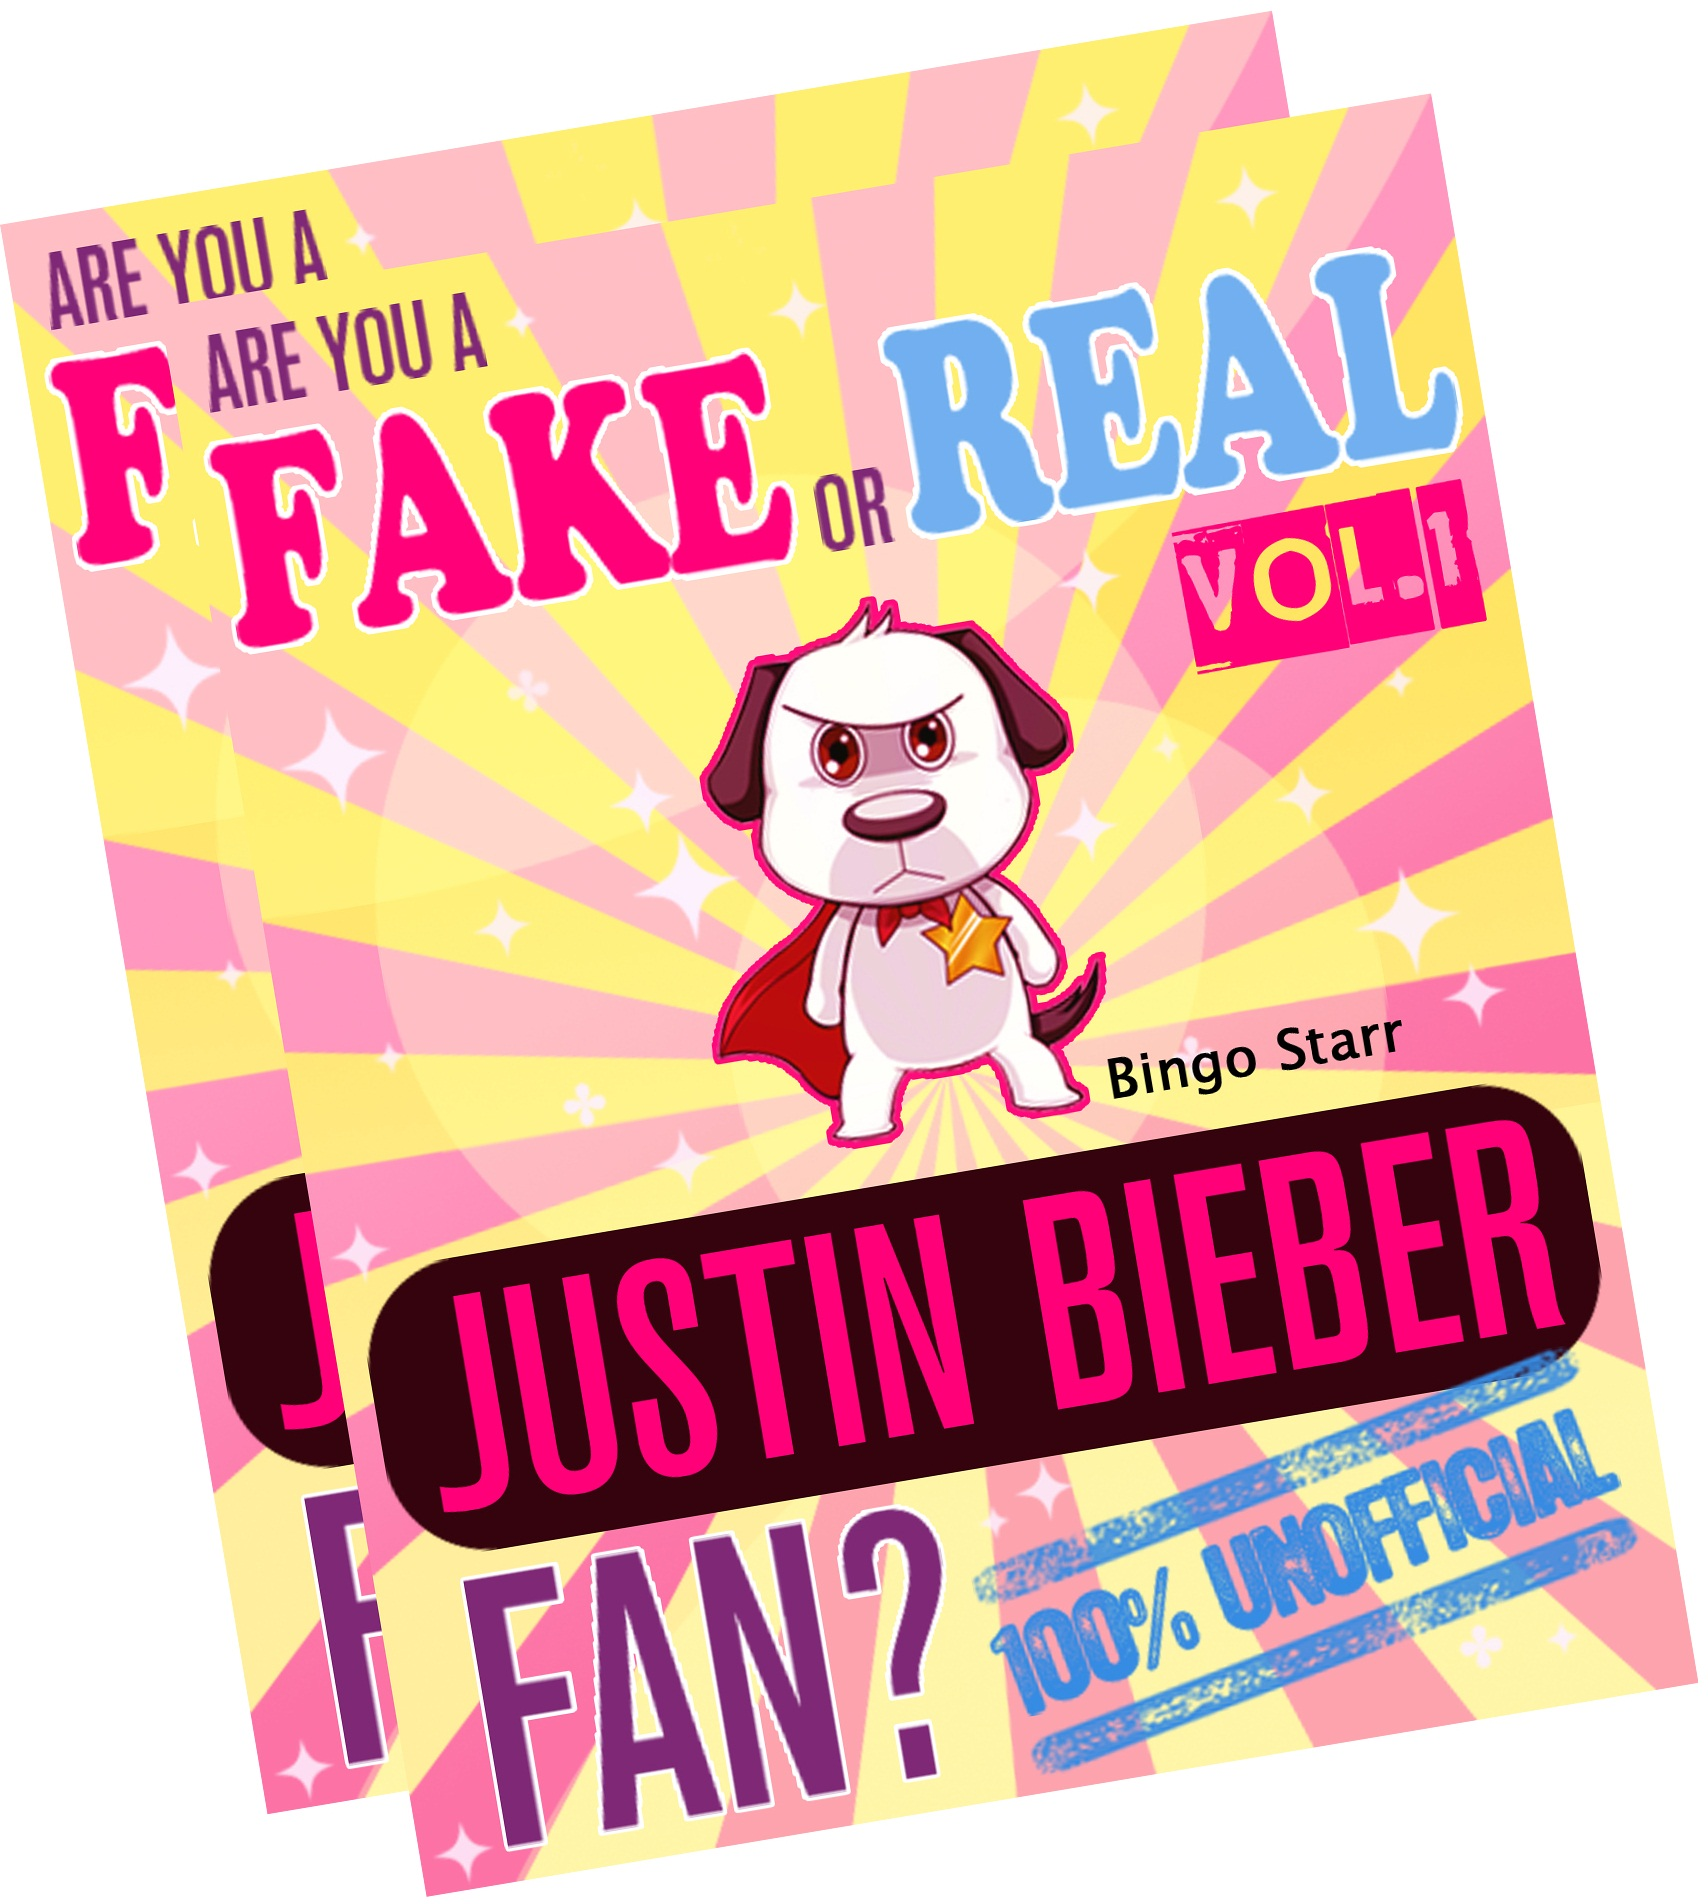 Are You a Fake or Real Justin Bieber Fan? Bundle - Volumes 1.2 - The 100% Unofficial Quiz and Facts Trivia Travel Set Game